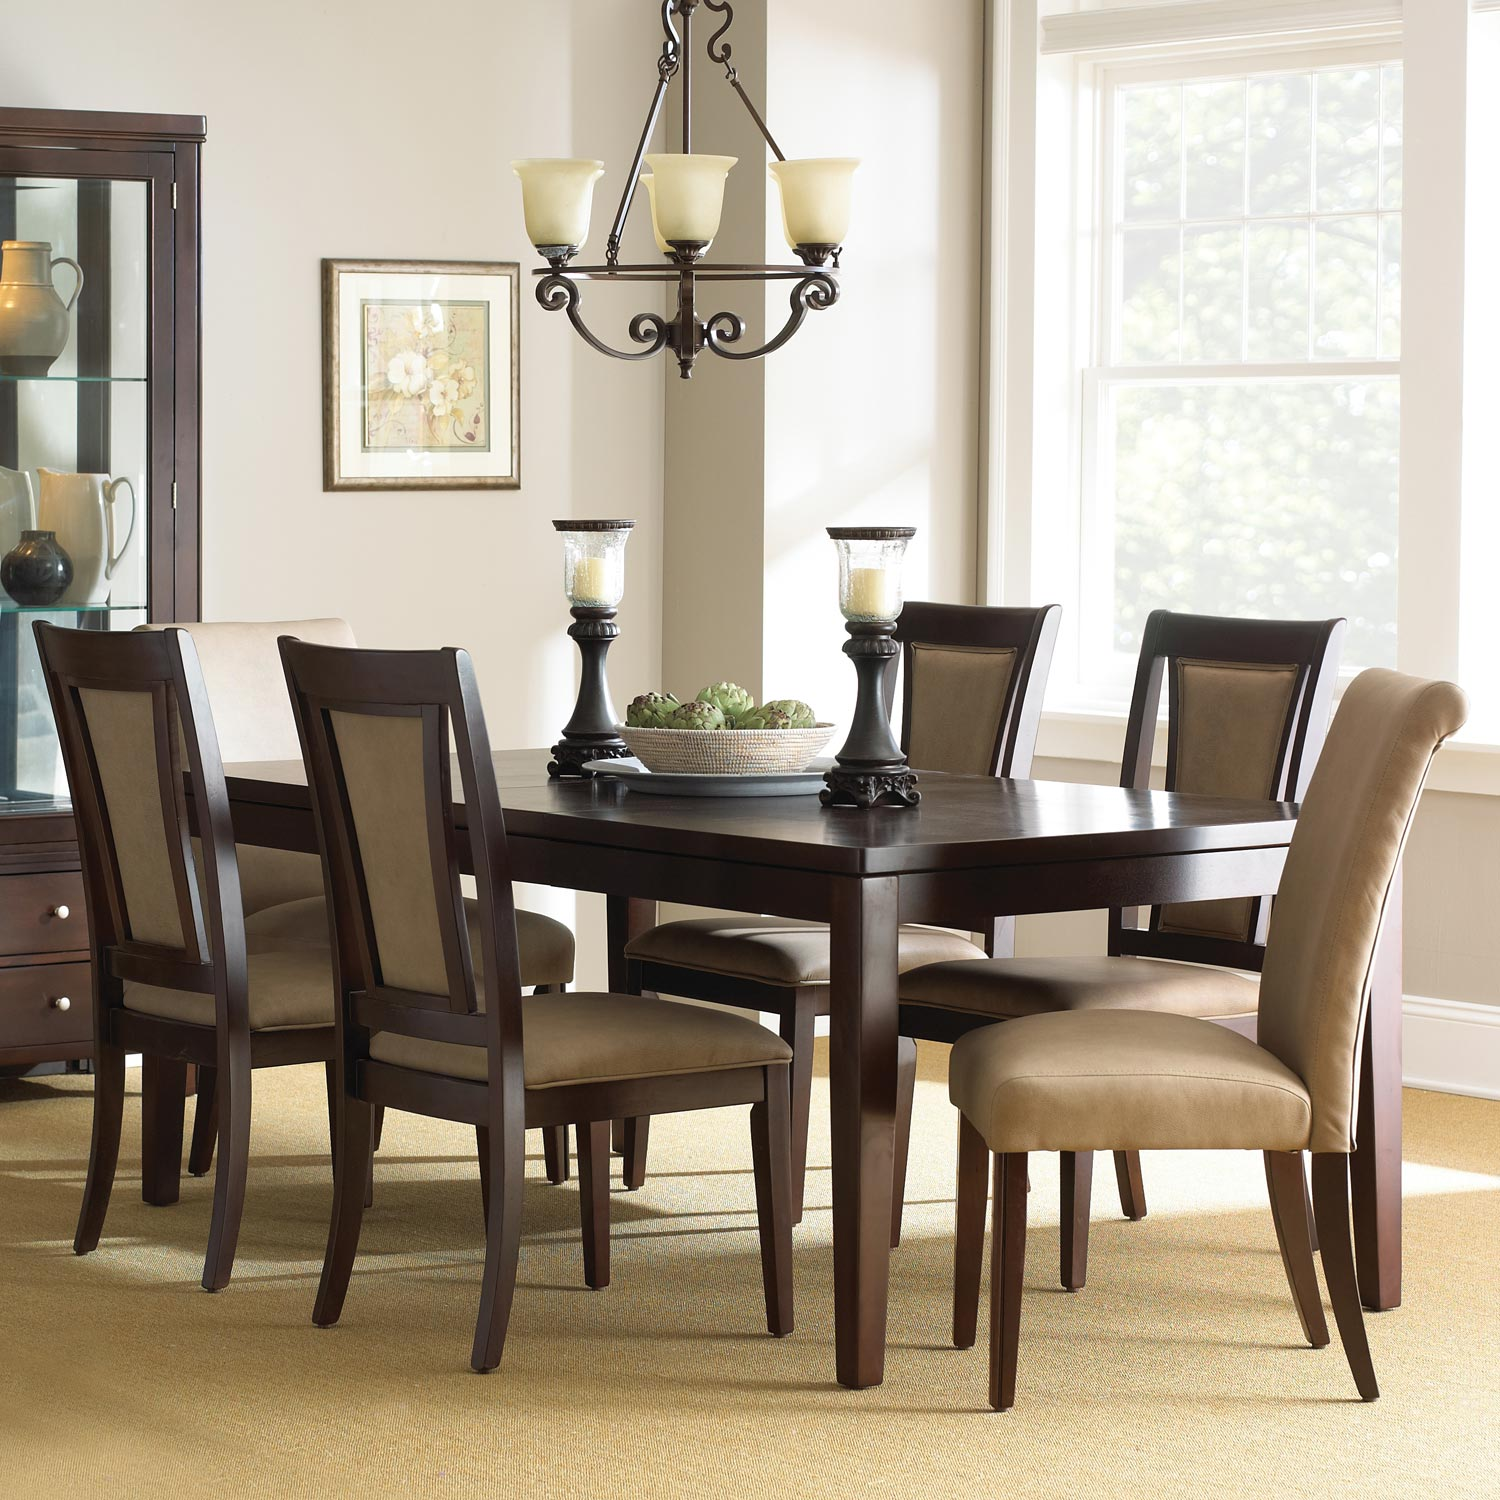 Wilson Contemporary Dining Set - Extension Table, Espresso Finish - SSC-WL500-7PC